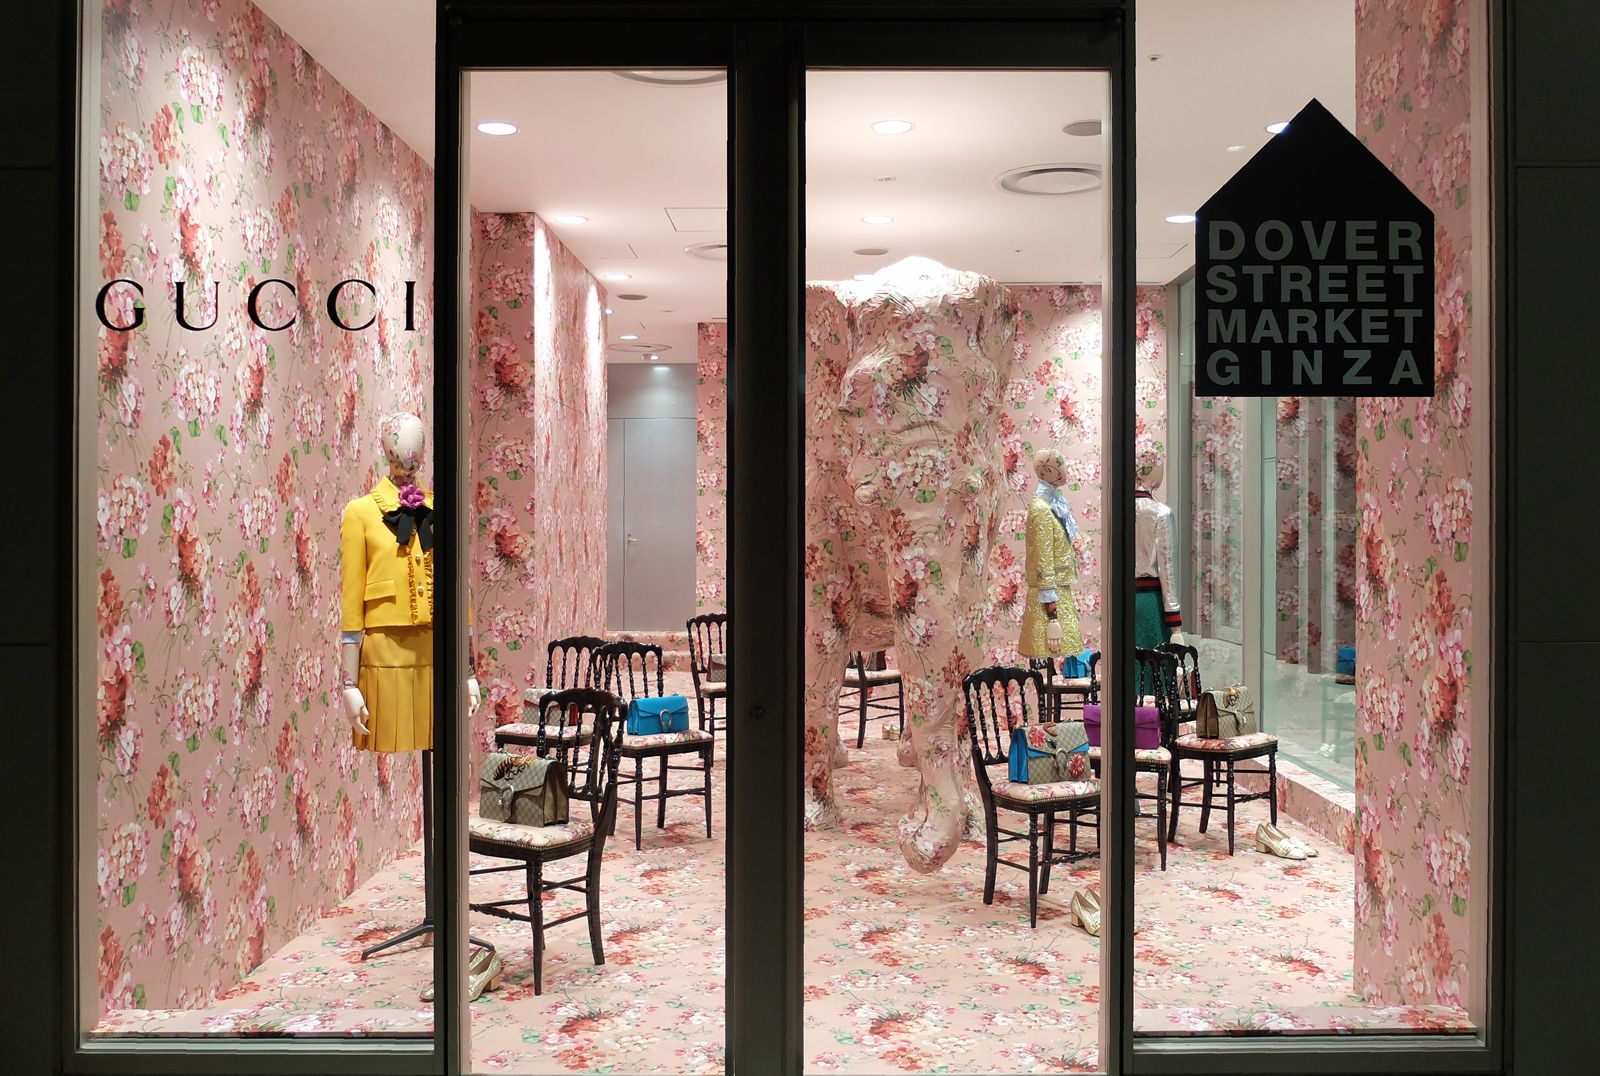 Dover street market store new york city retail design blog - Gucci Customizes Elephant Room At Dover Street Market Ginza Pursuitist